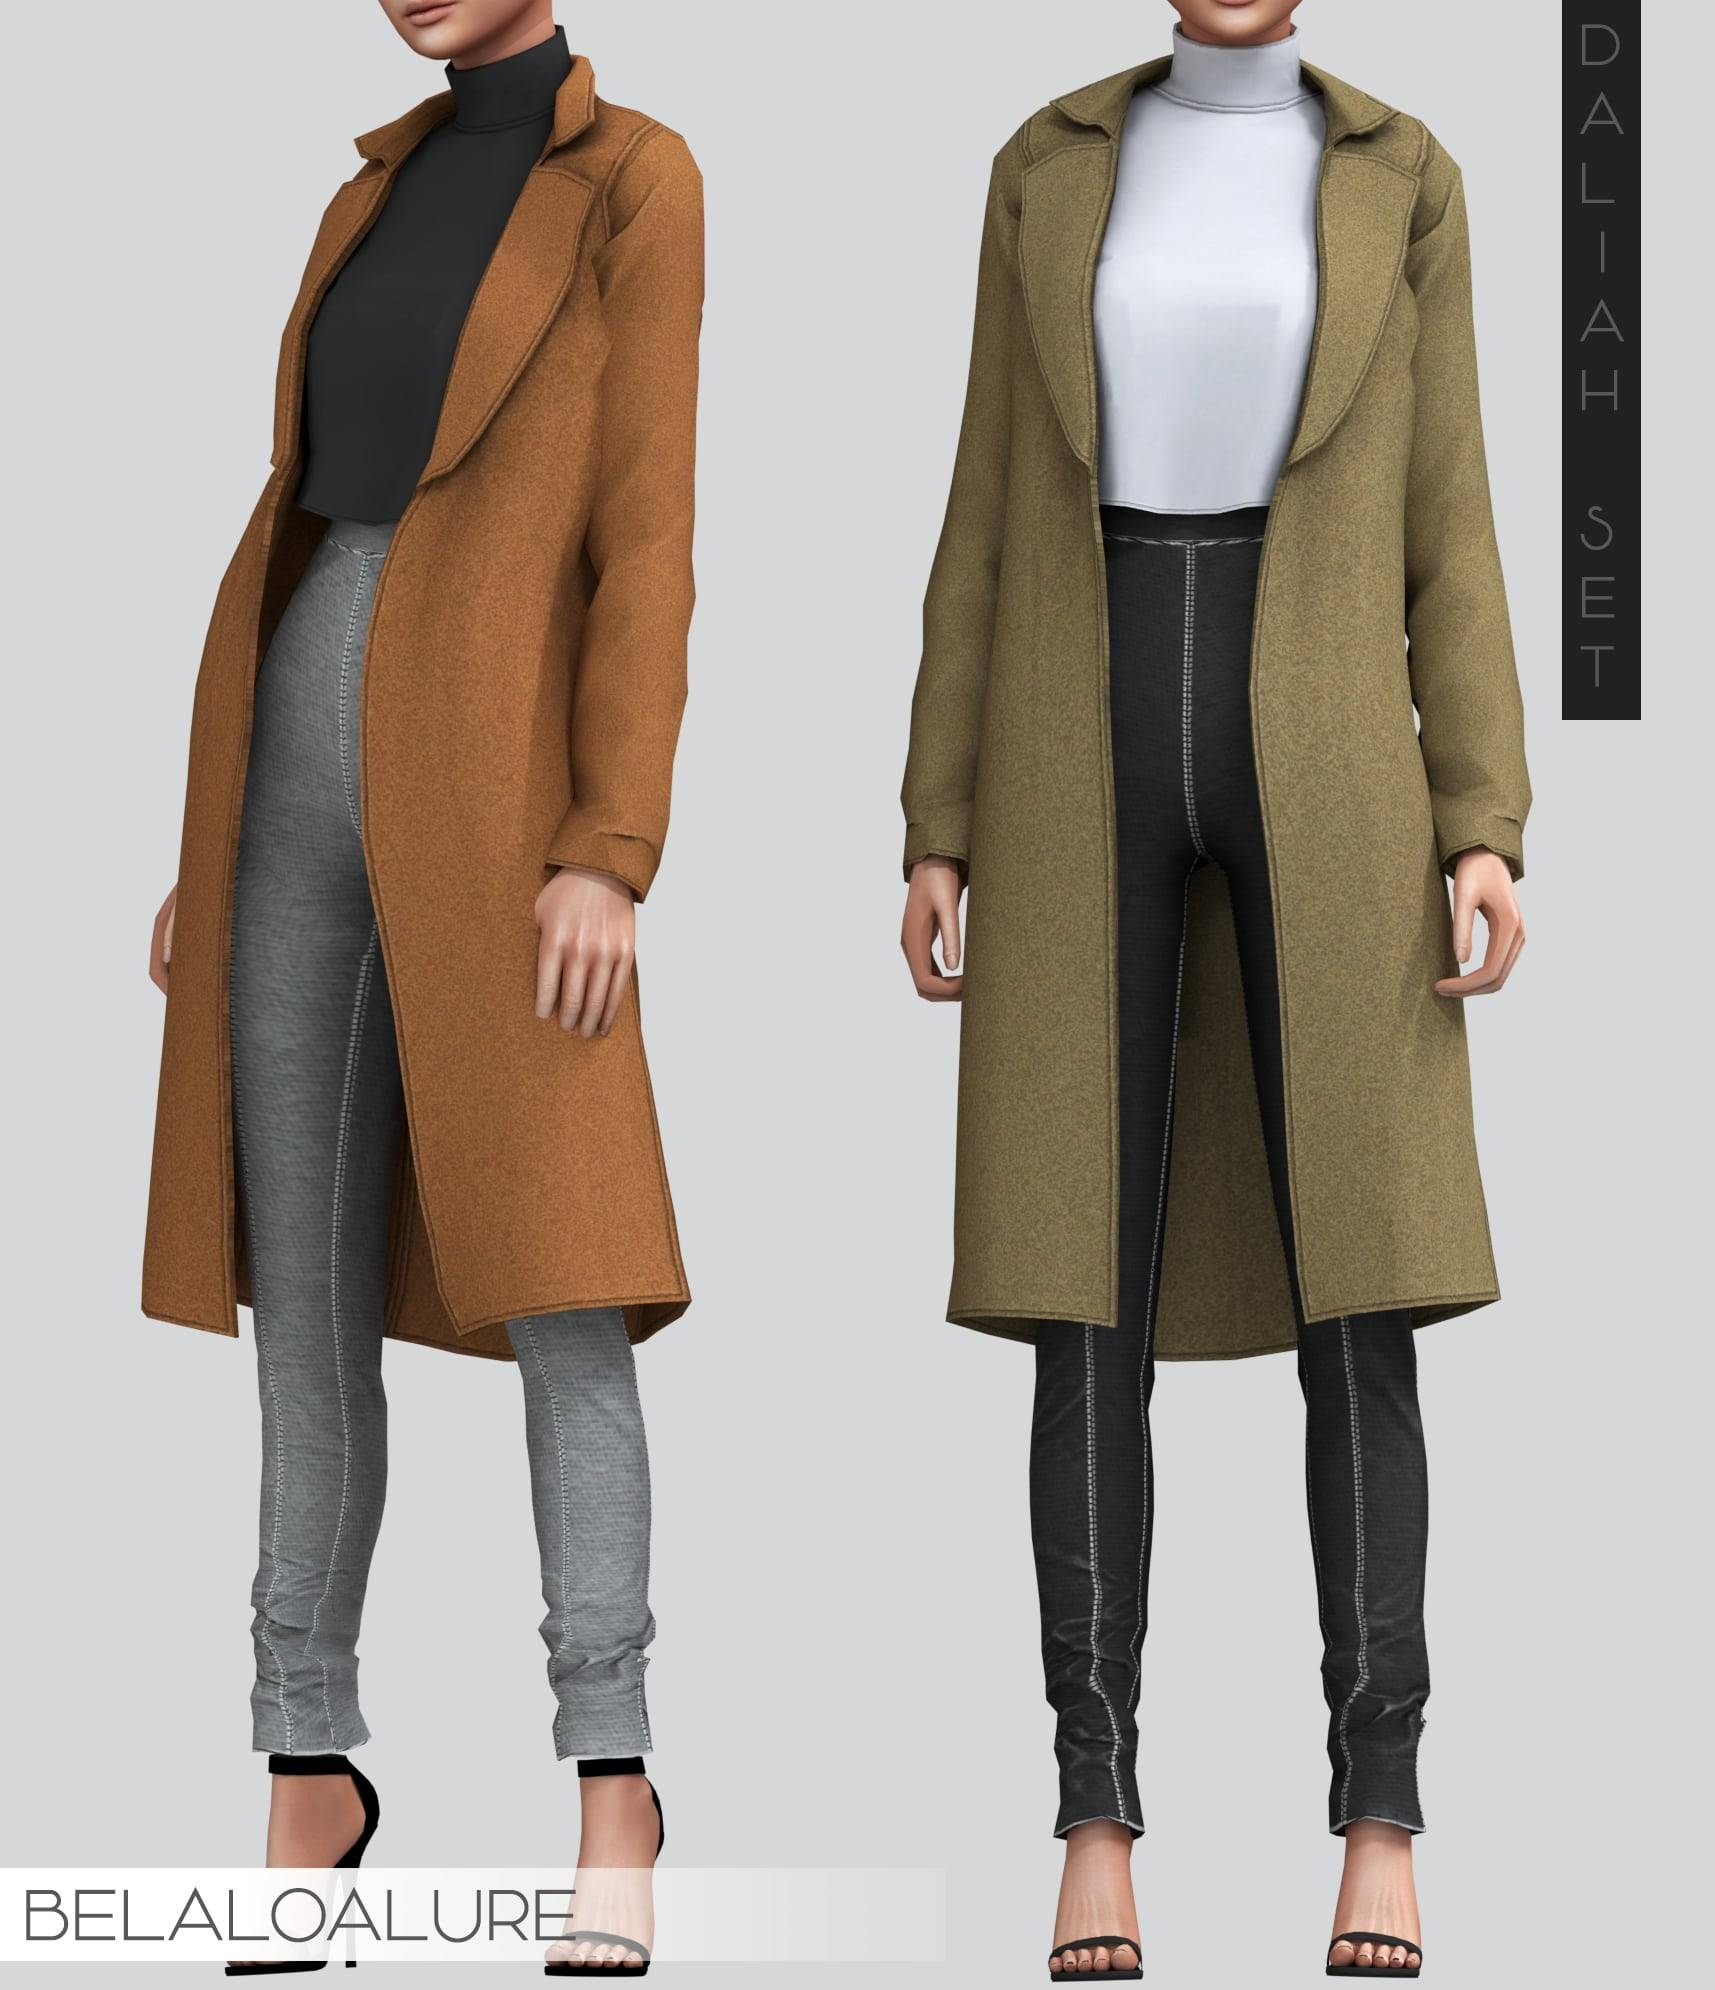 Комплект одежды - Cozy coat over simple turtle neck top and high waisted pants